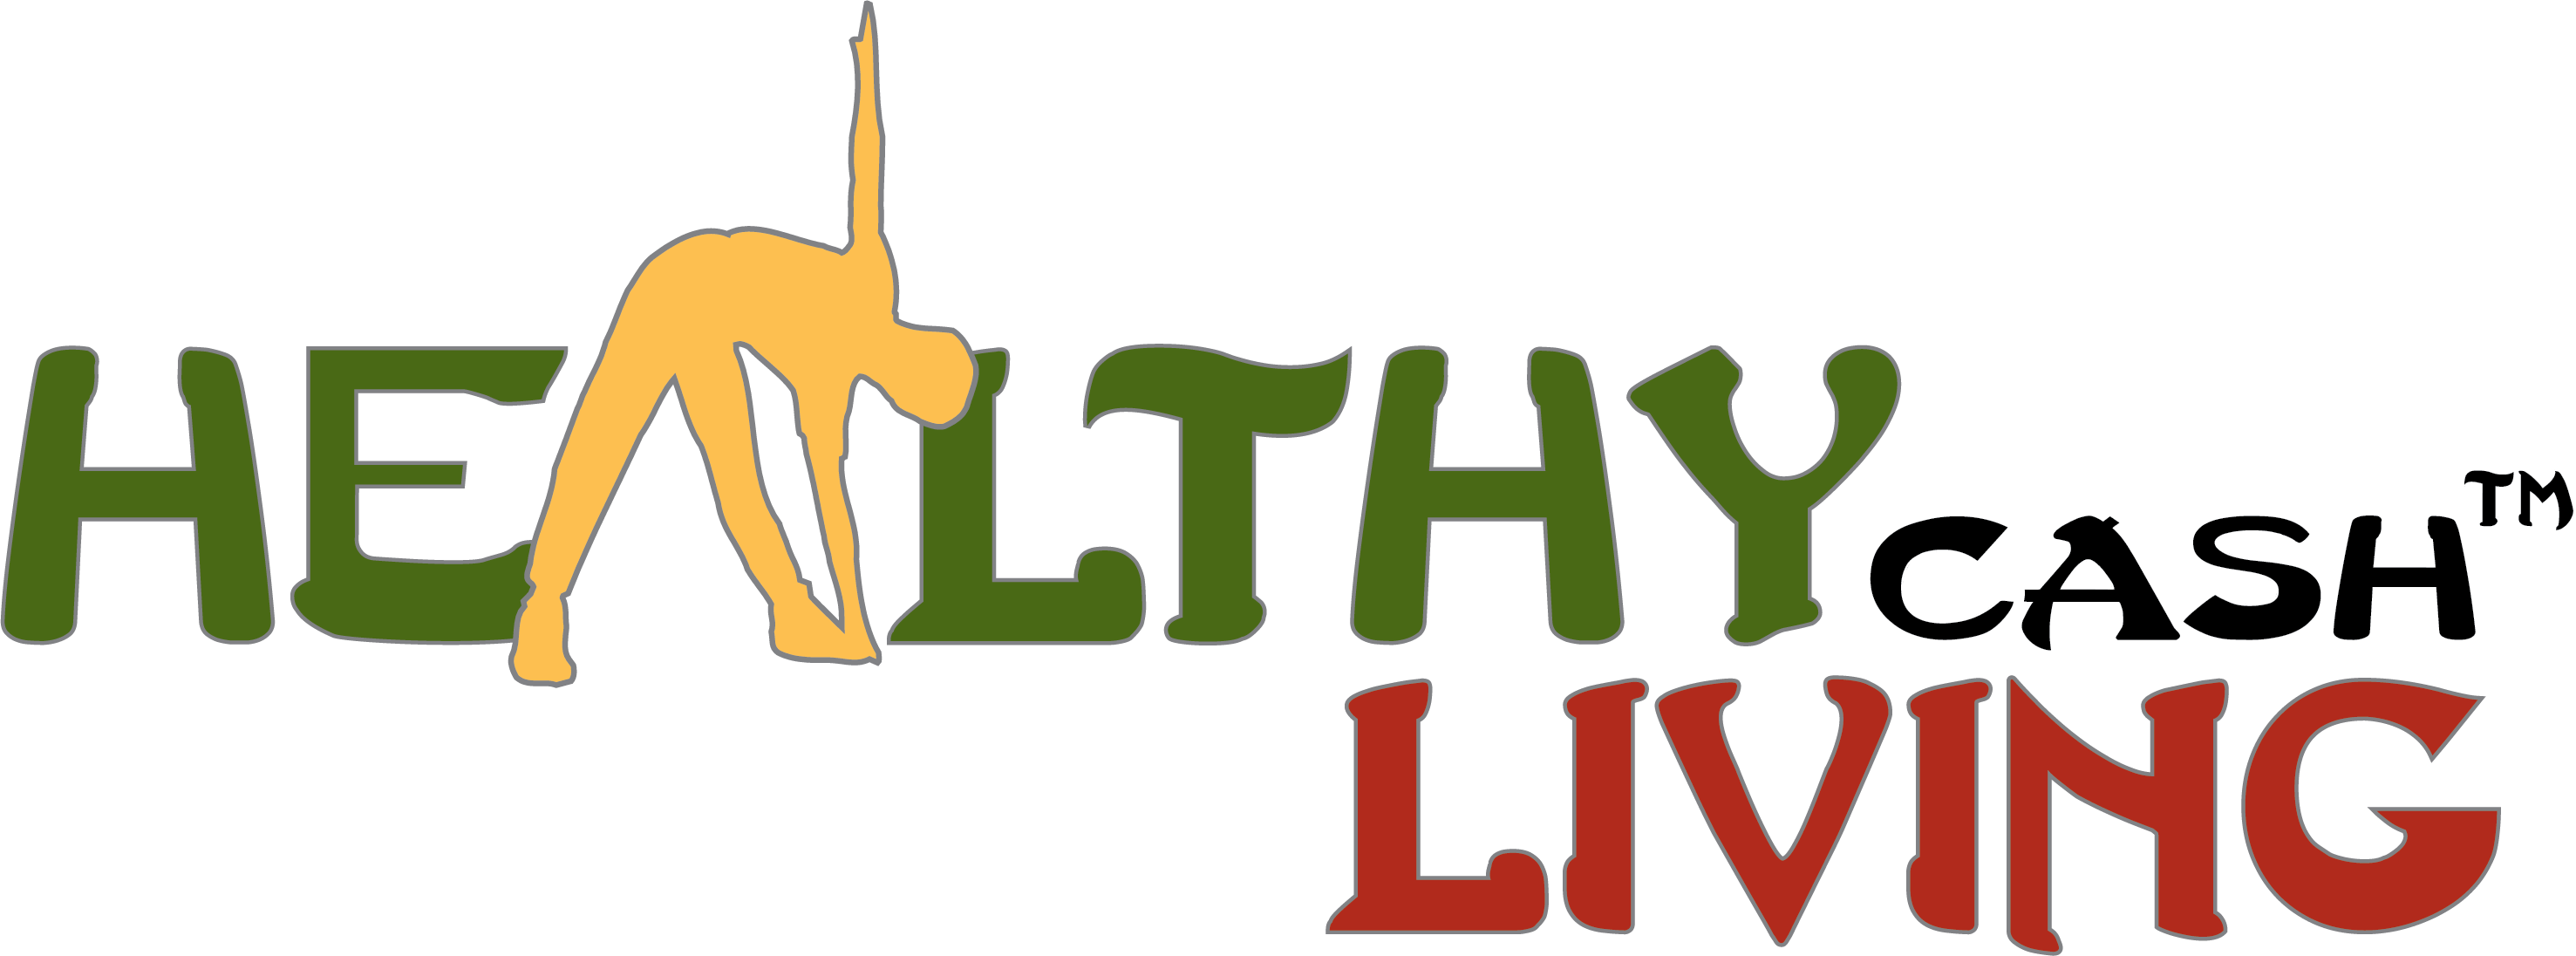 HealthyLiving Cash-LOGO